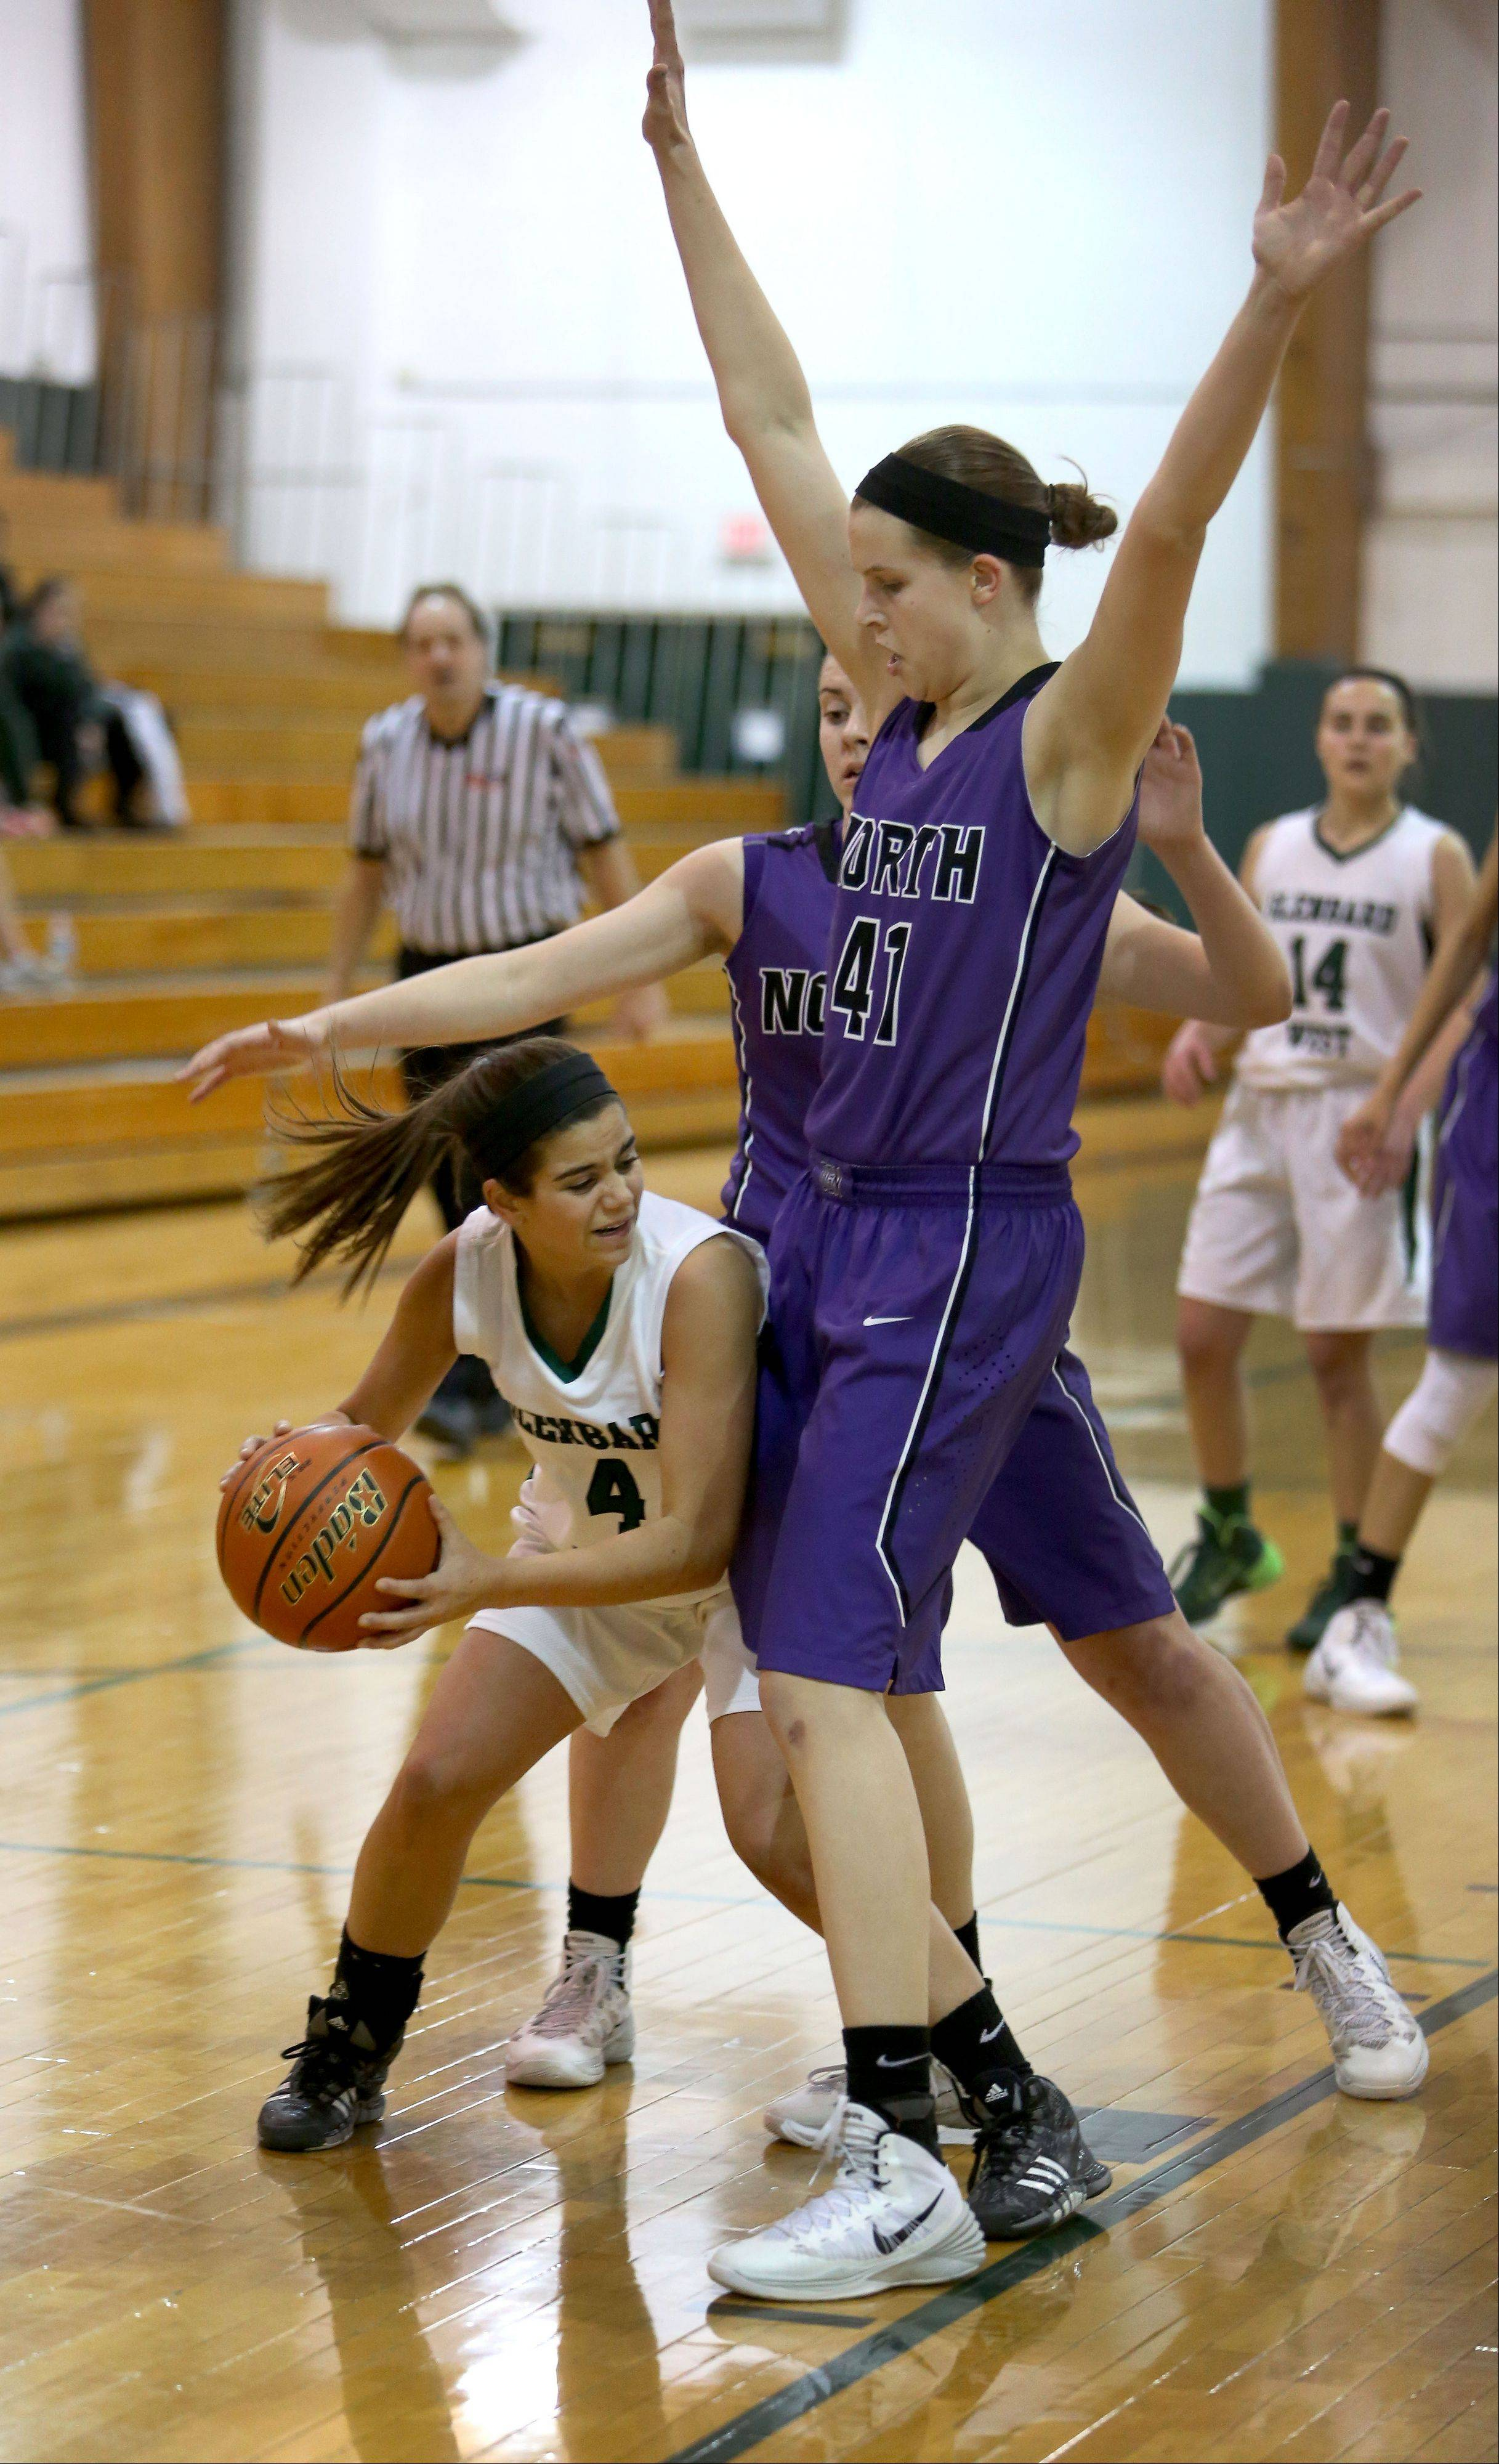 Grace Burrello of Glenbard West, left, looks for room to pass the ball as Peyton Winters of Downers Grove North, right, defends.